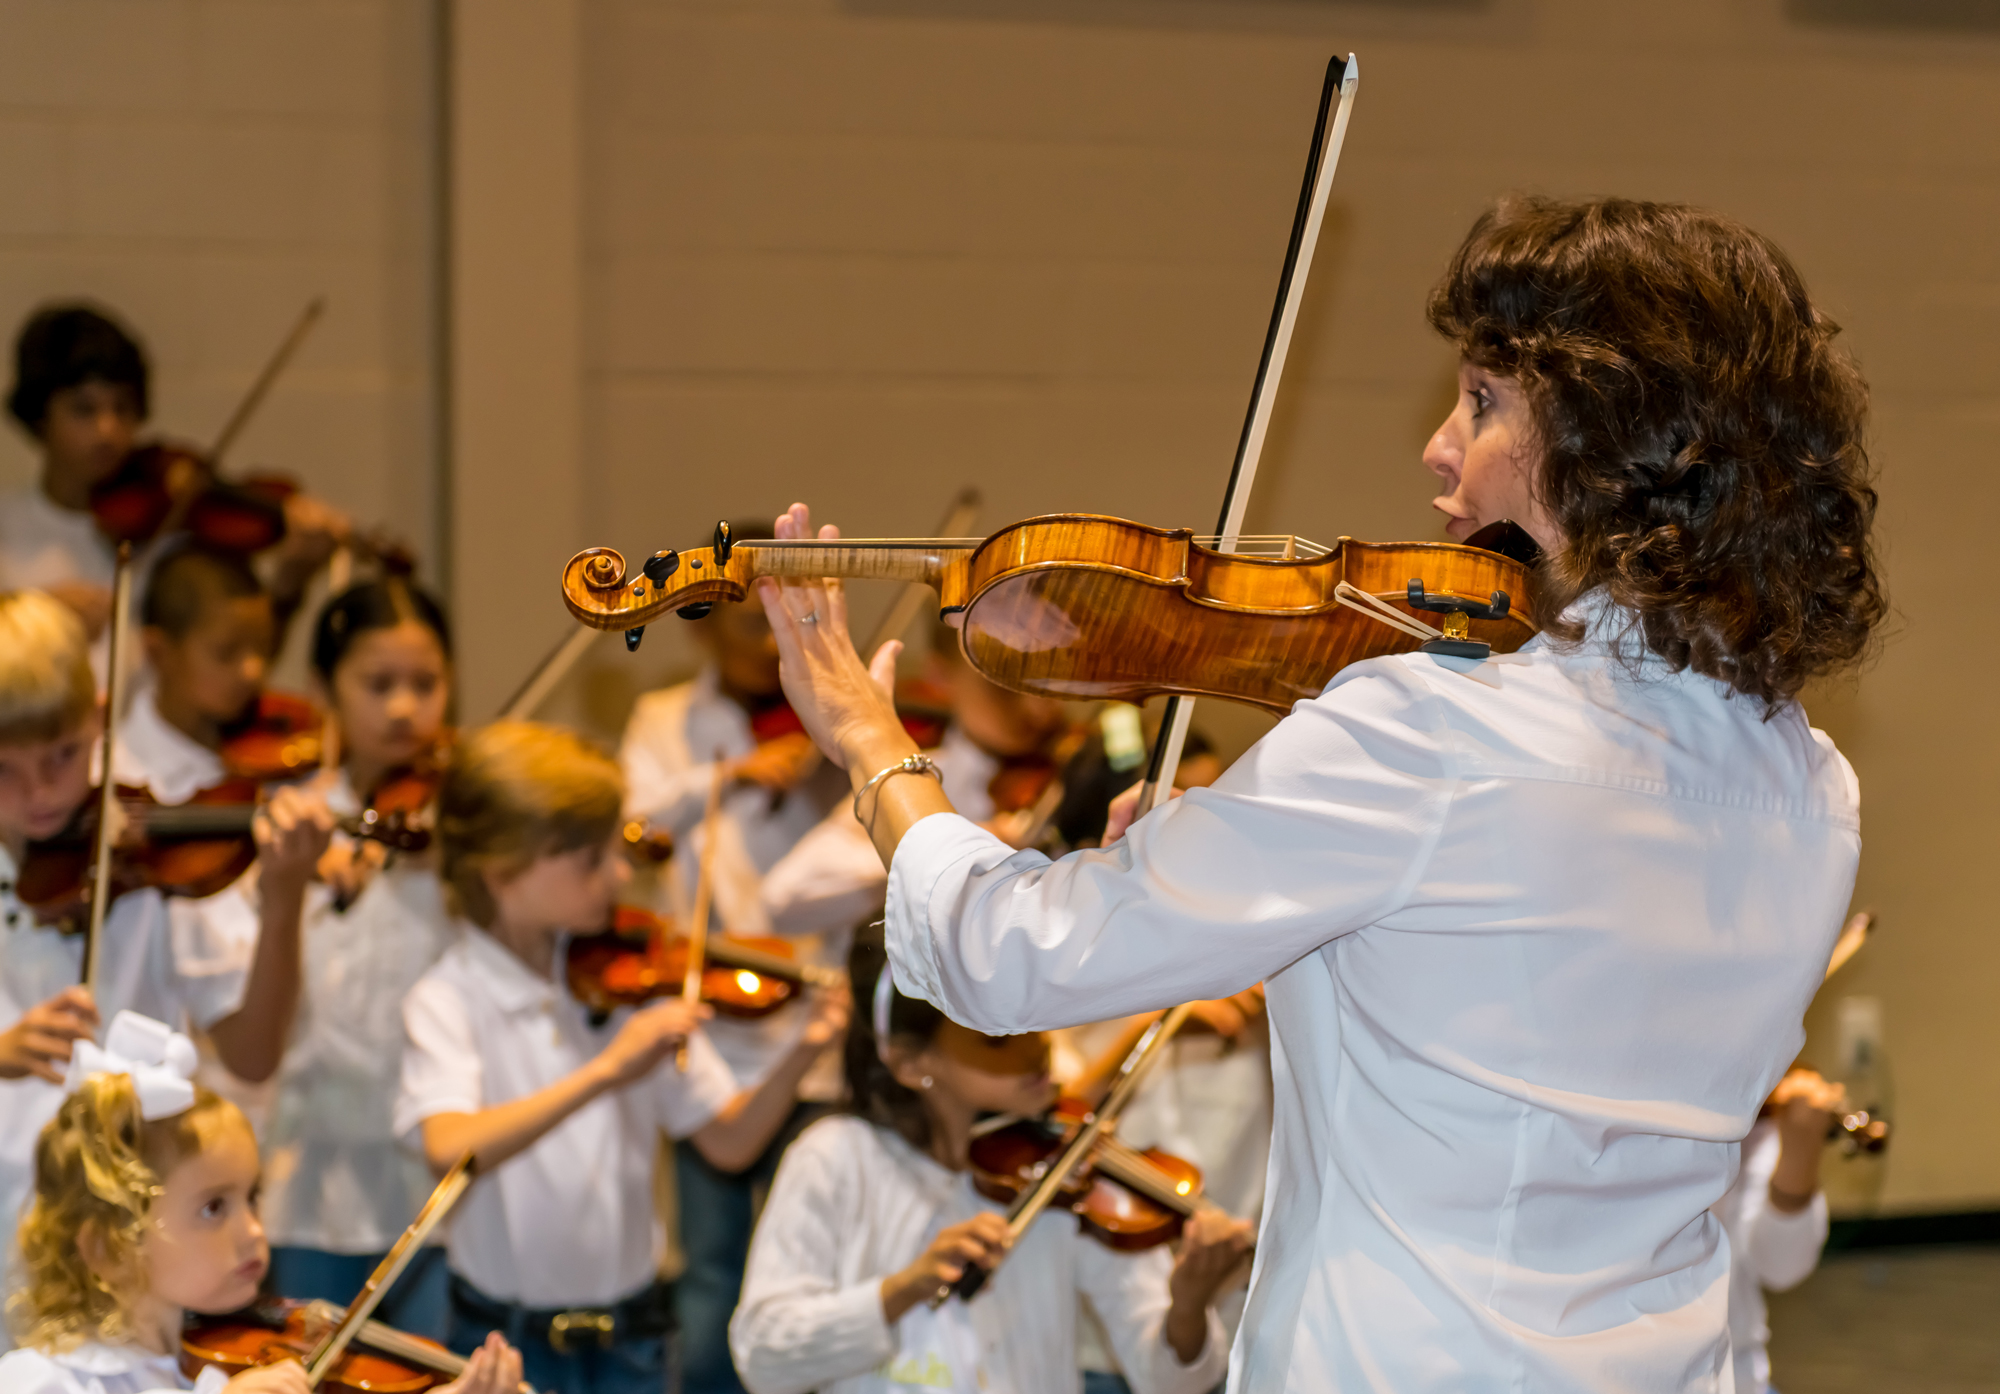 Image of Academy of Strings instructor teaching students to play the violin using the Suzuki Method